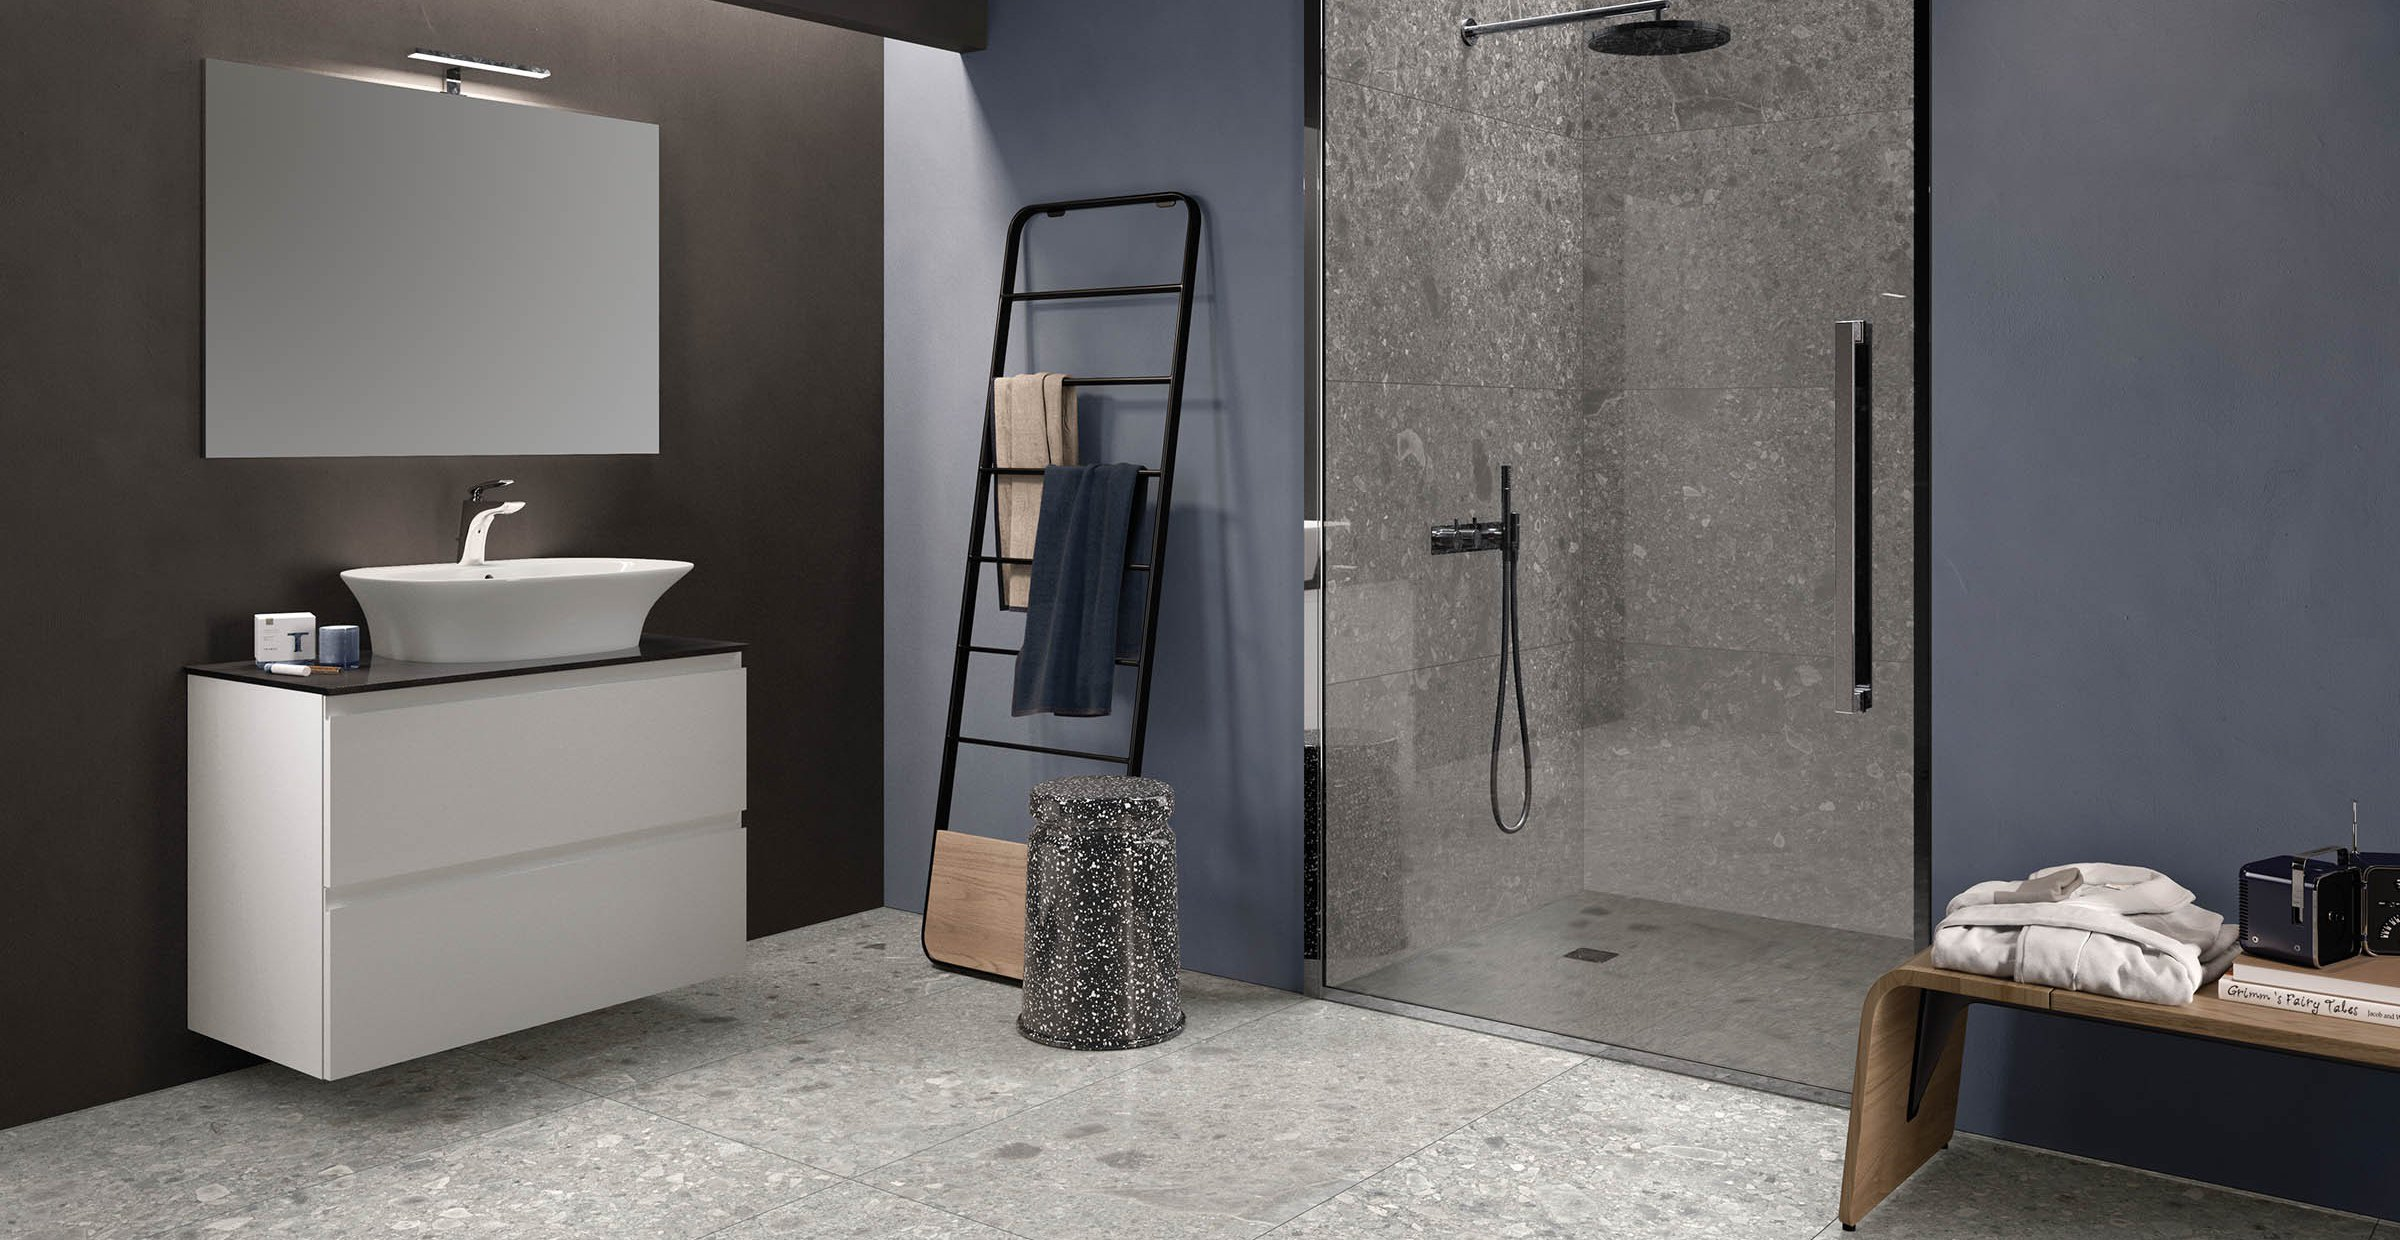 ceppo di gre' stone Grey tiles Modern style Bathroom